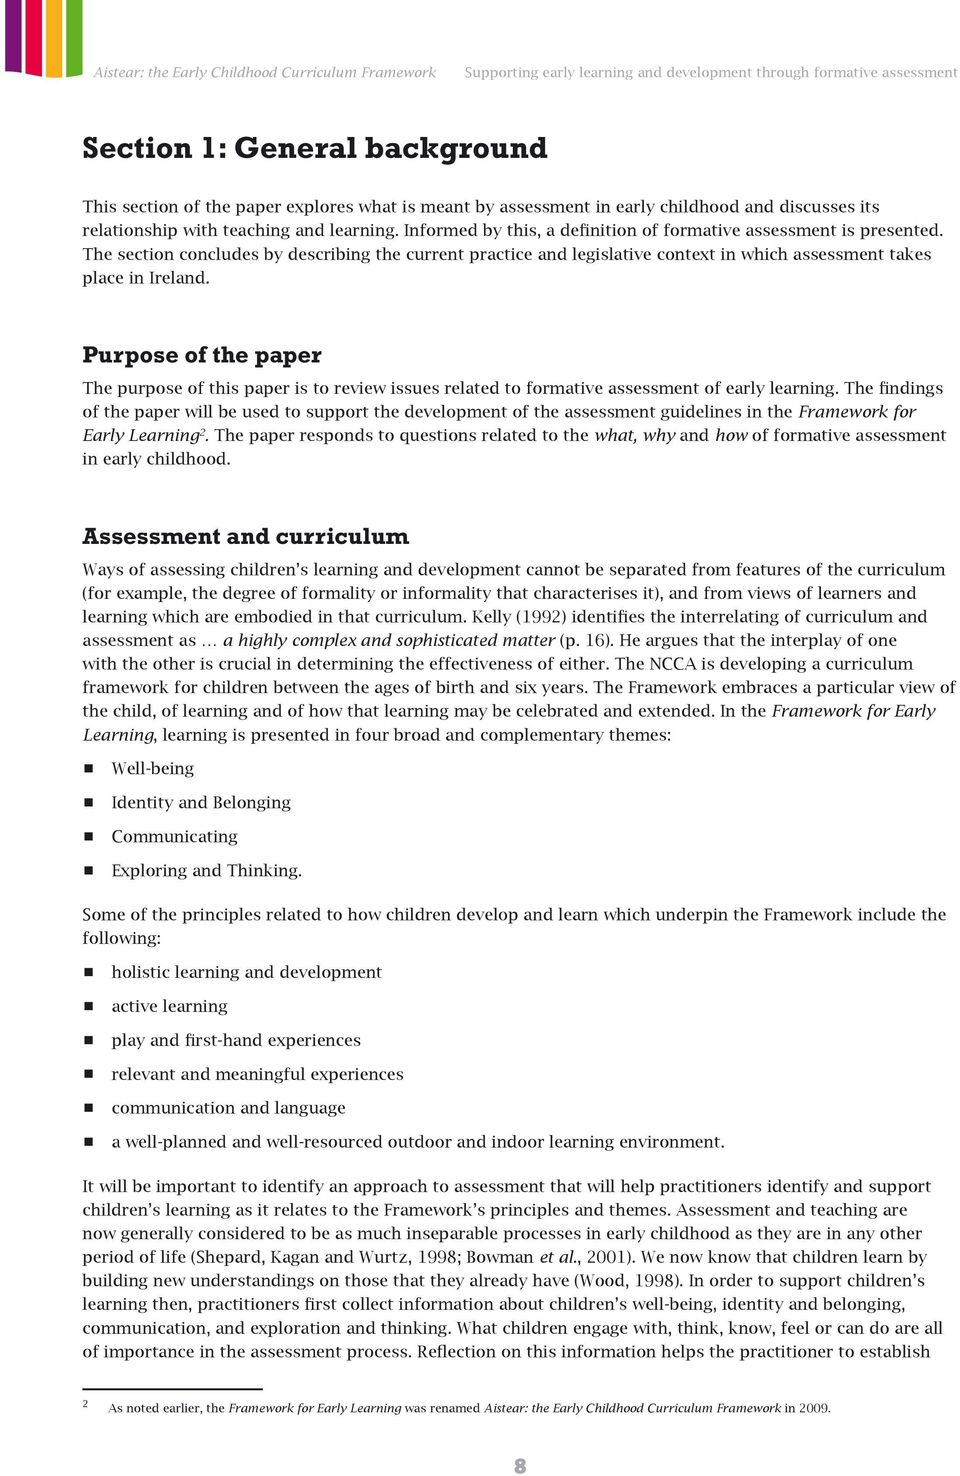 Purpose of the paper The purpose of this paper is to review issues related to formative assessment of early learning.